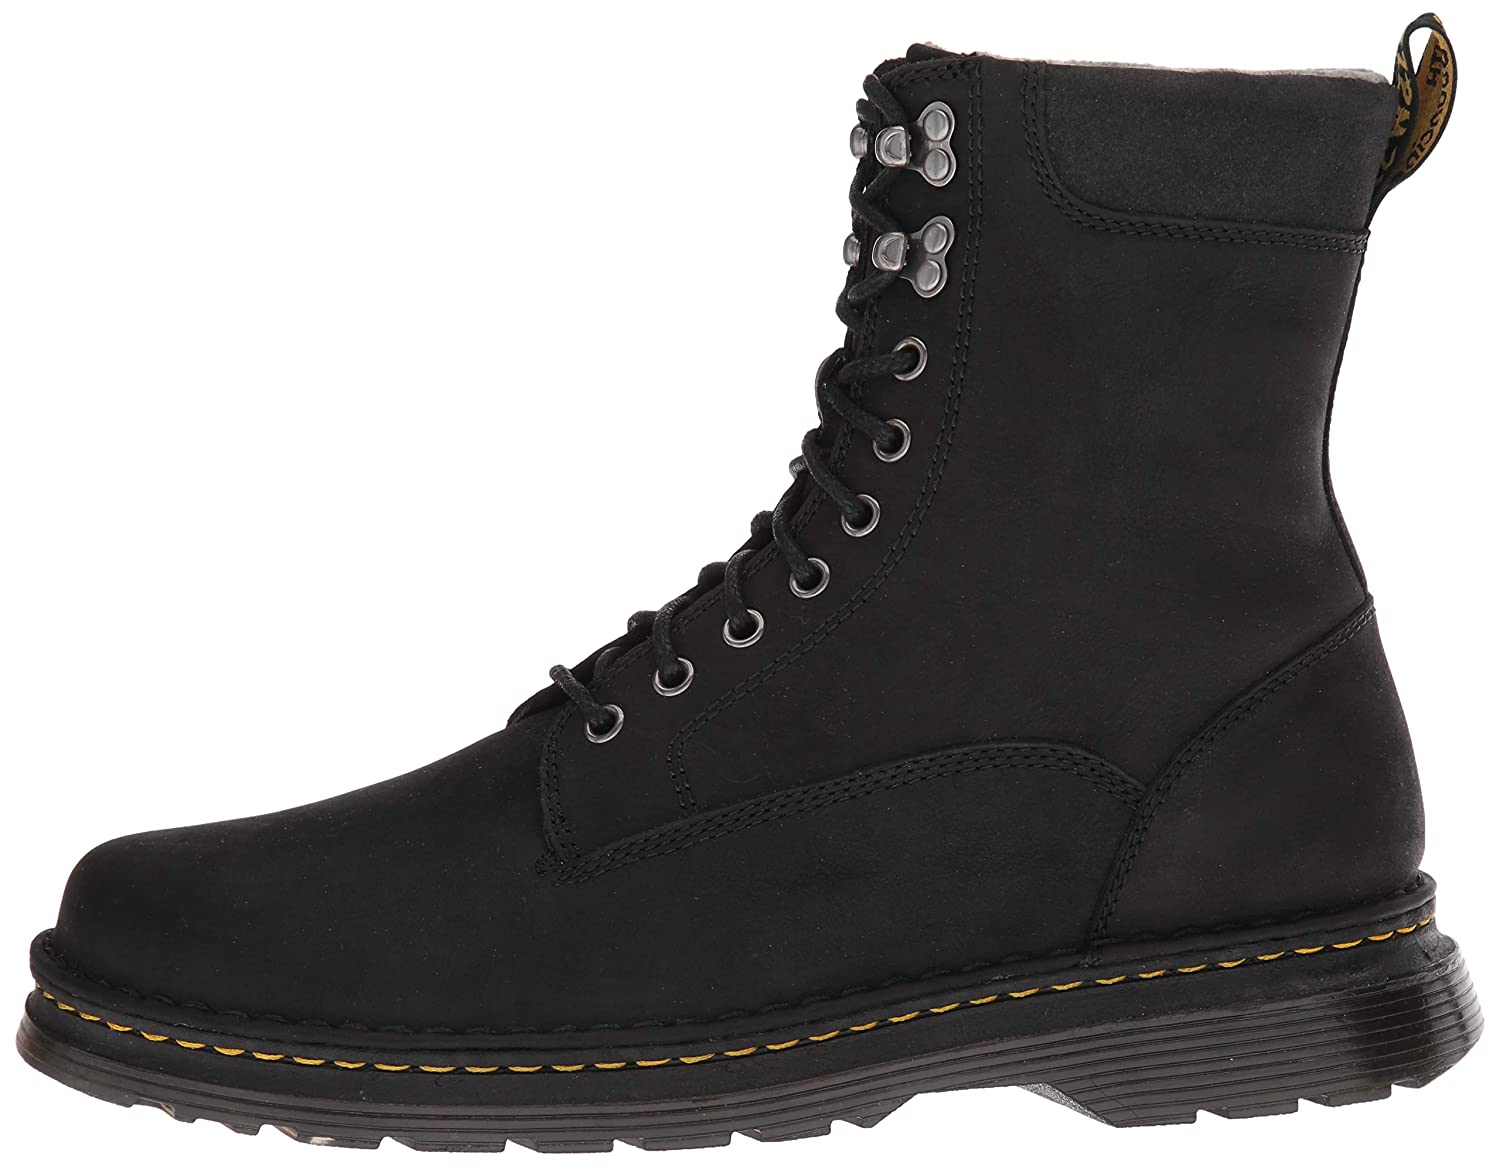 Dr. Martens Men's Vincent Hook Mid Calf Calf Calf Stiefel, schwarz, 6 M UK (7 US) 338648